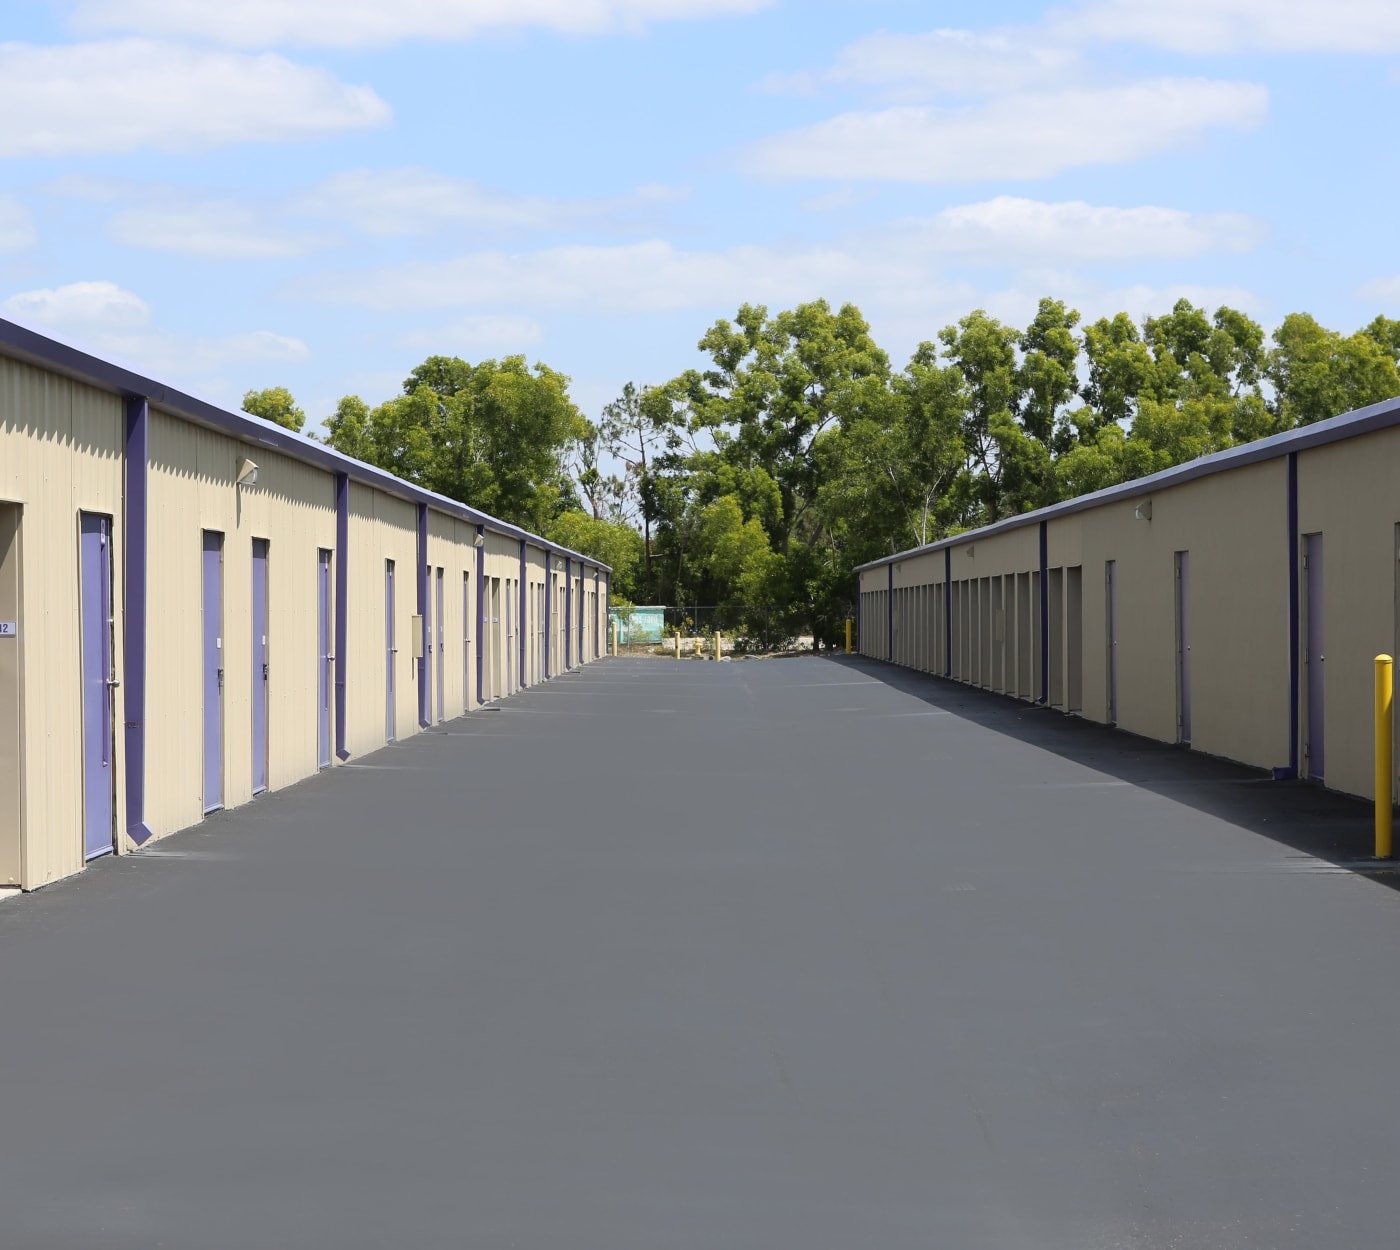 Large driveway at Midgard Self Storage in Murrells Inlet, South Carolina